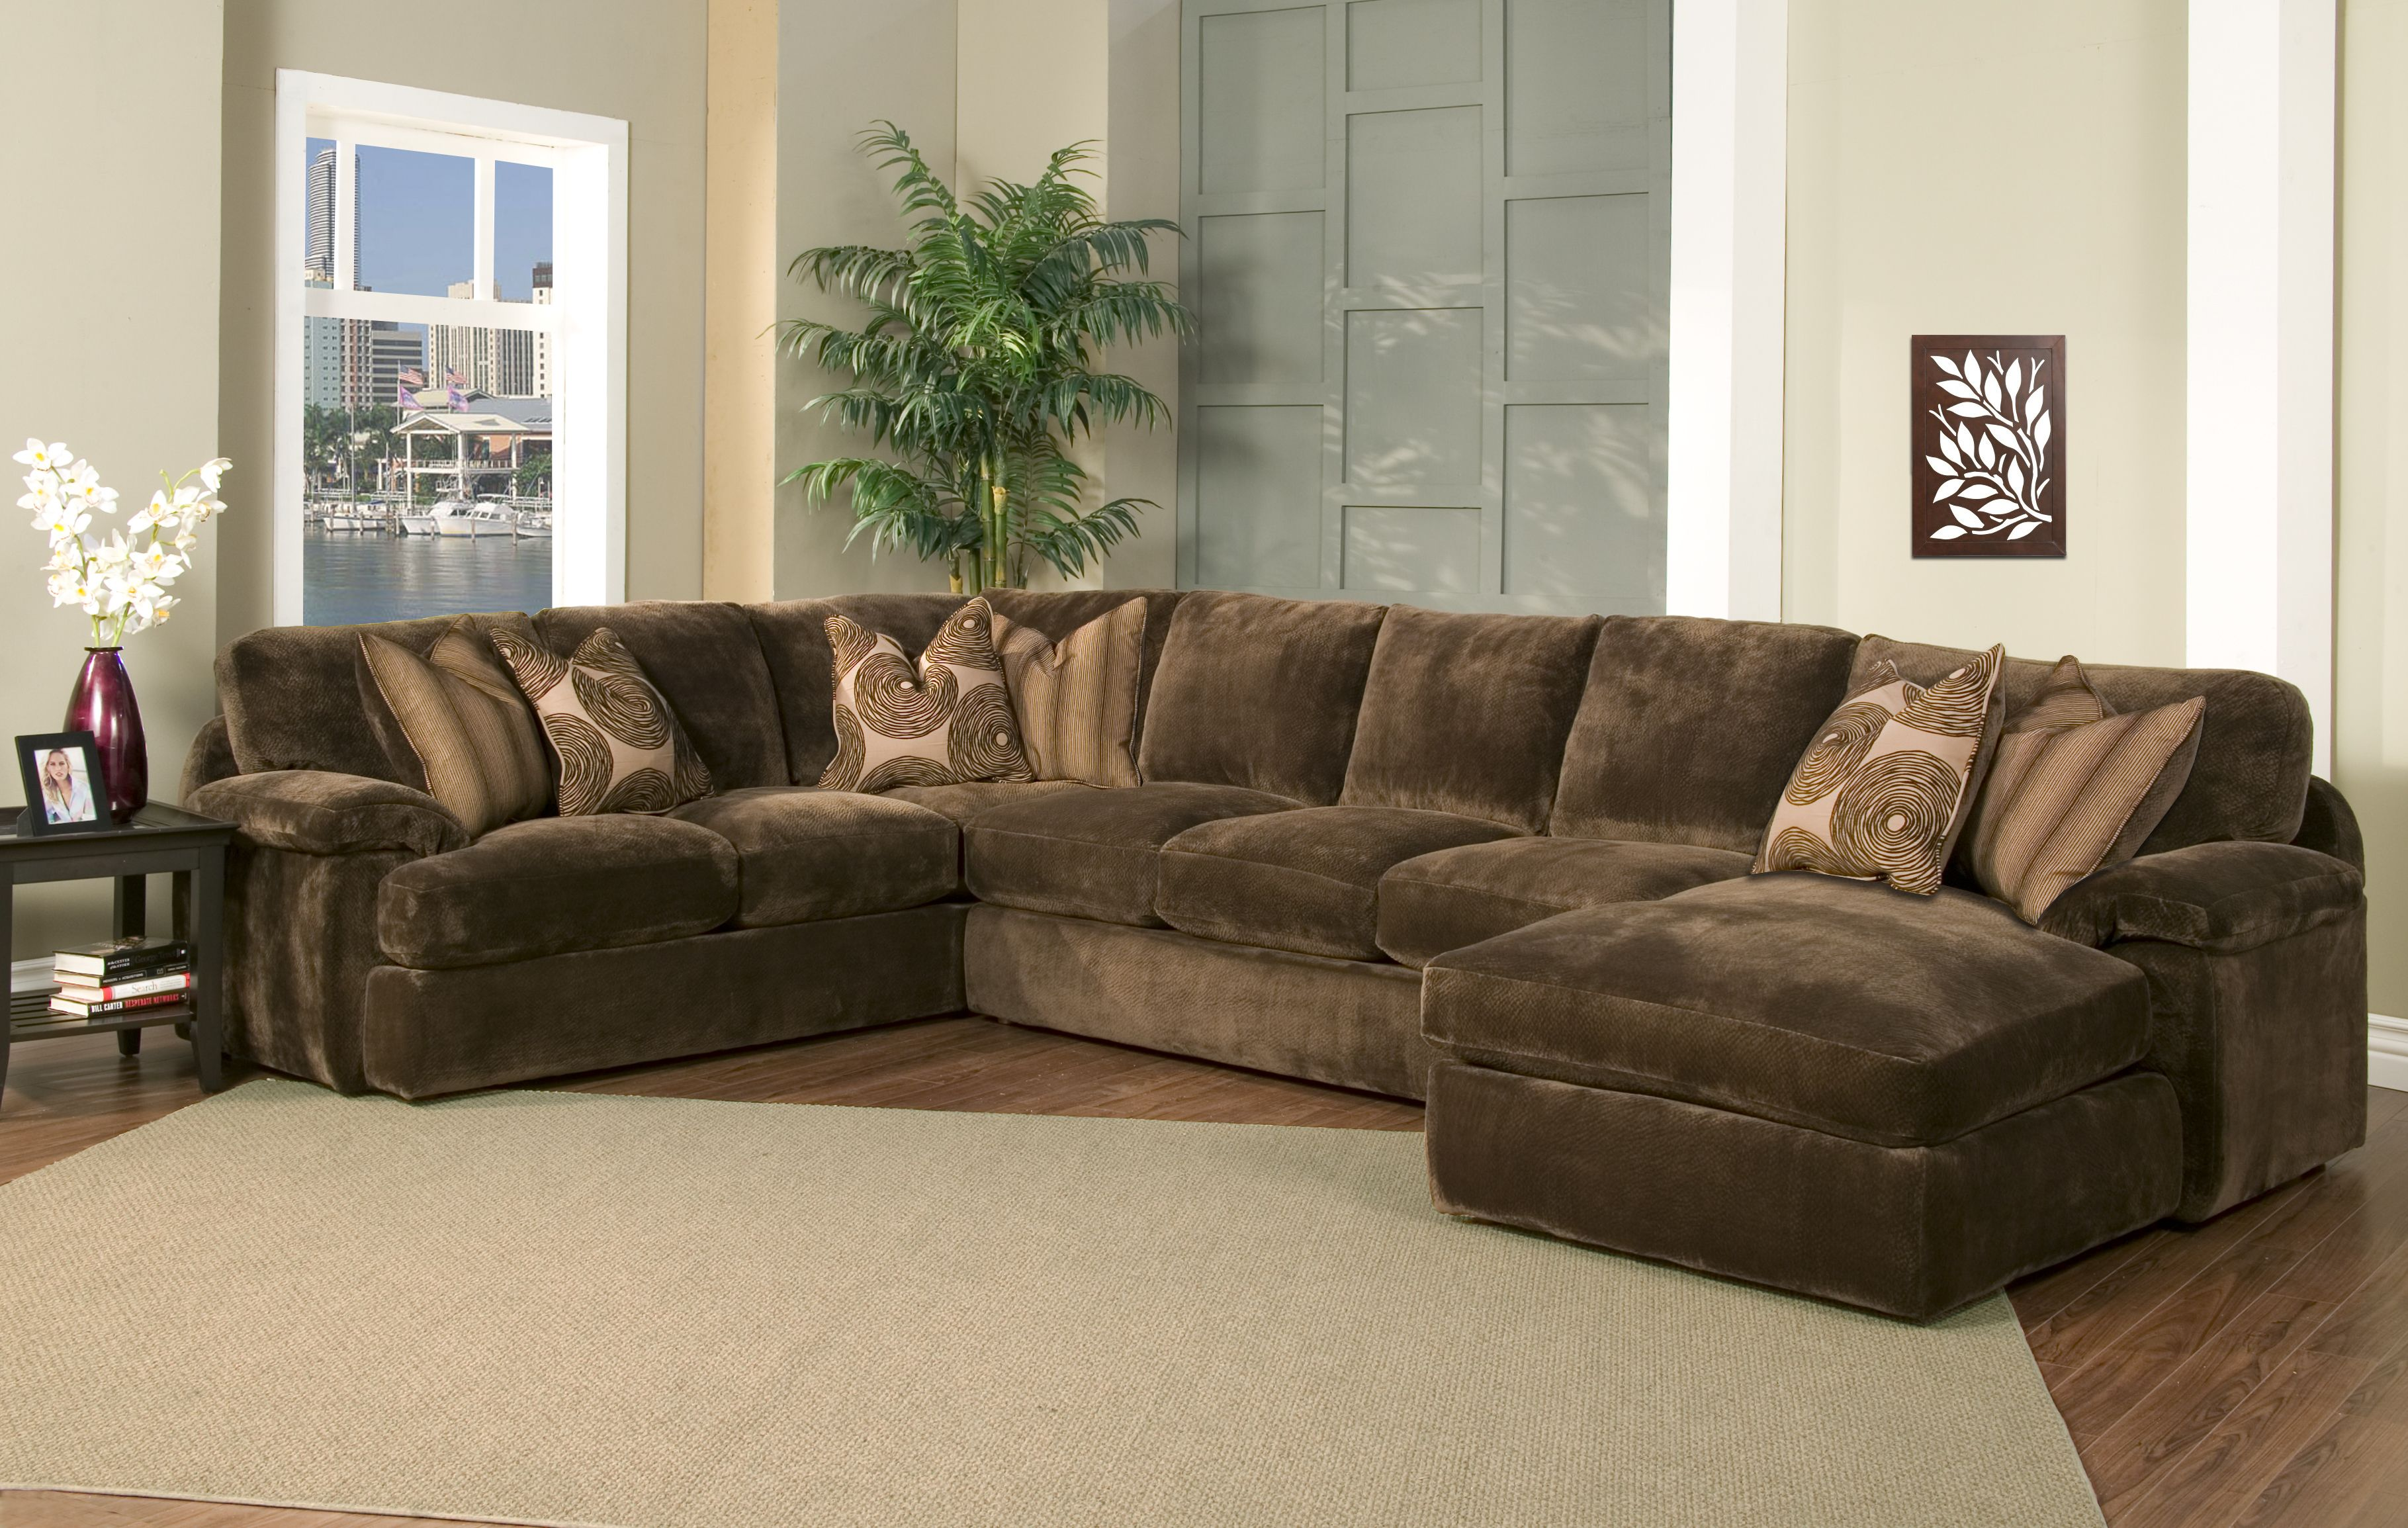 Sectional Sofas Houston Sectional Sofa With Chaise Luxury Sofa Design Grey Sectional Sofa